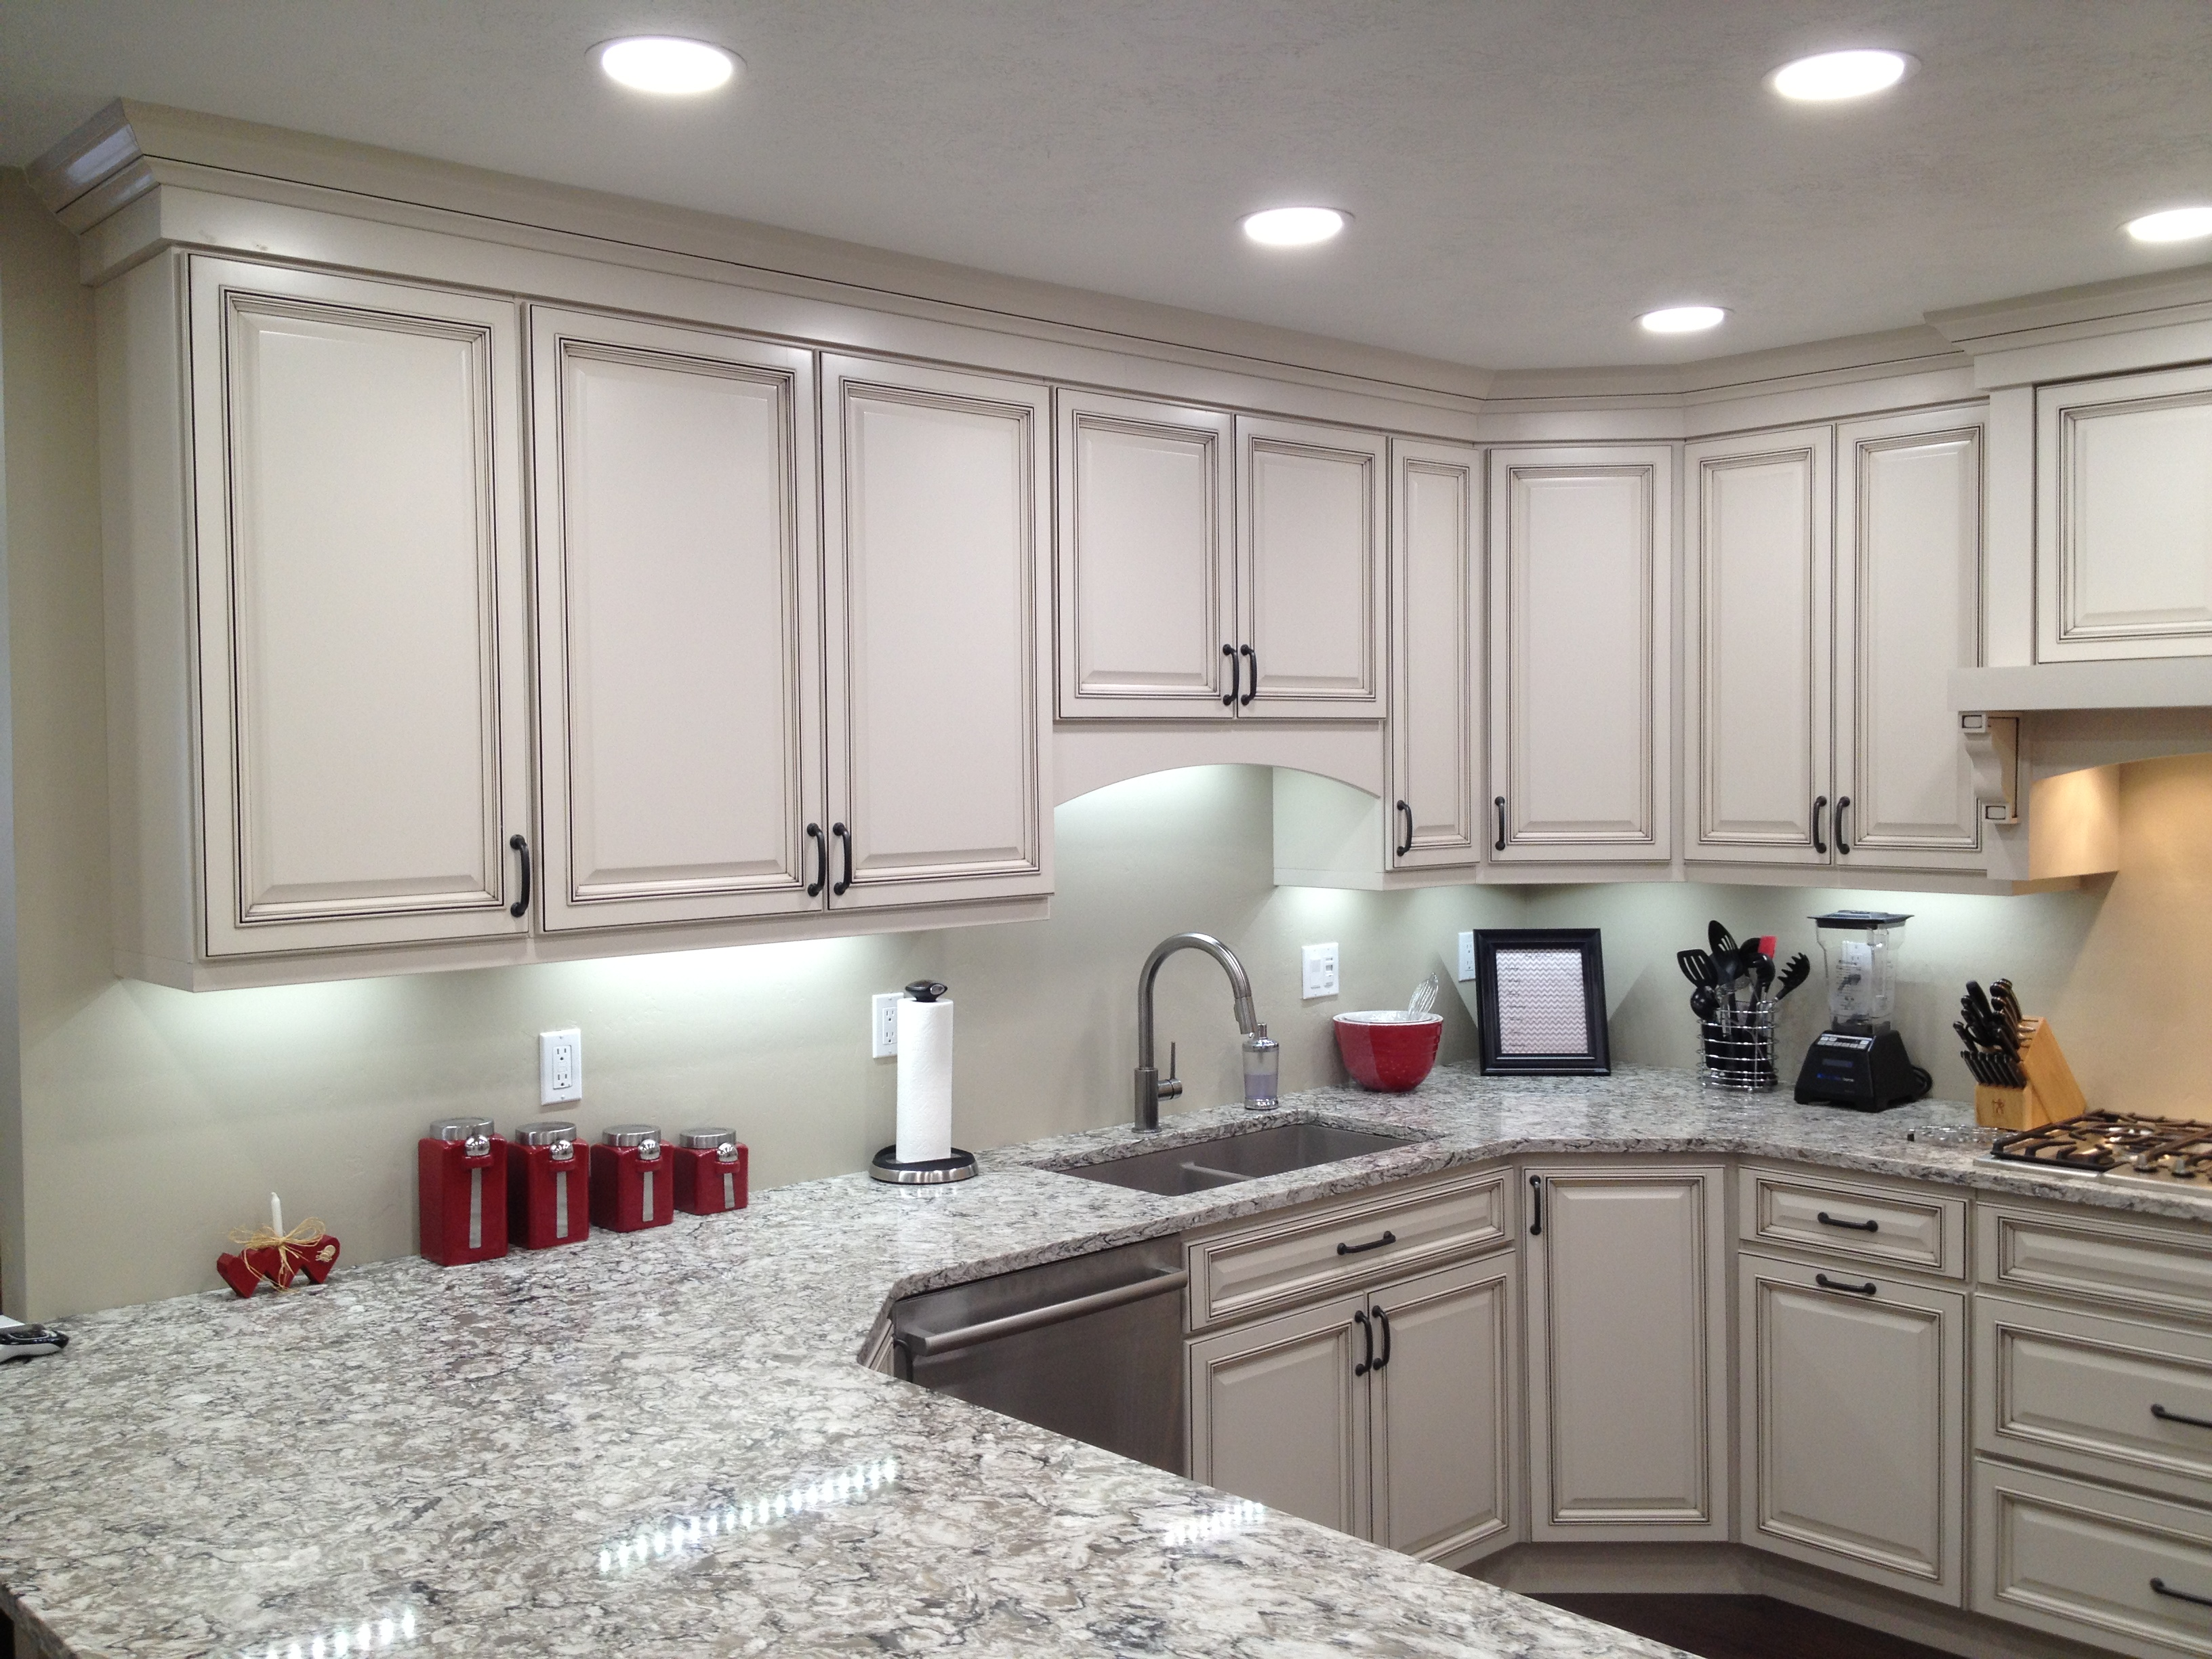 Pax LED Under cabinet lighting & Wireless LED Under Cabinet Lighting - ILLUMRA azcodes.com